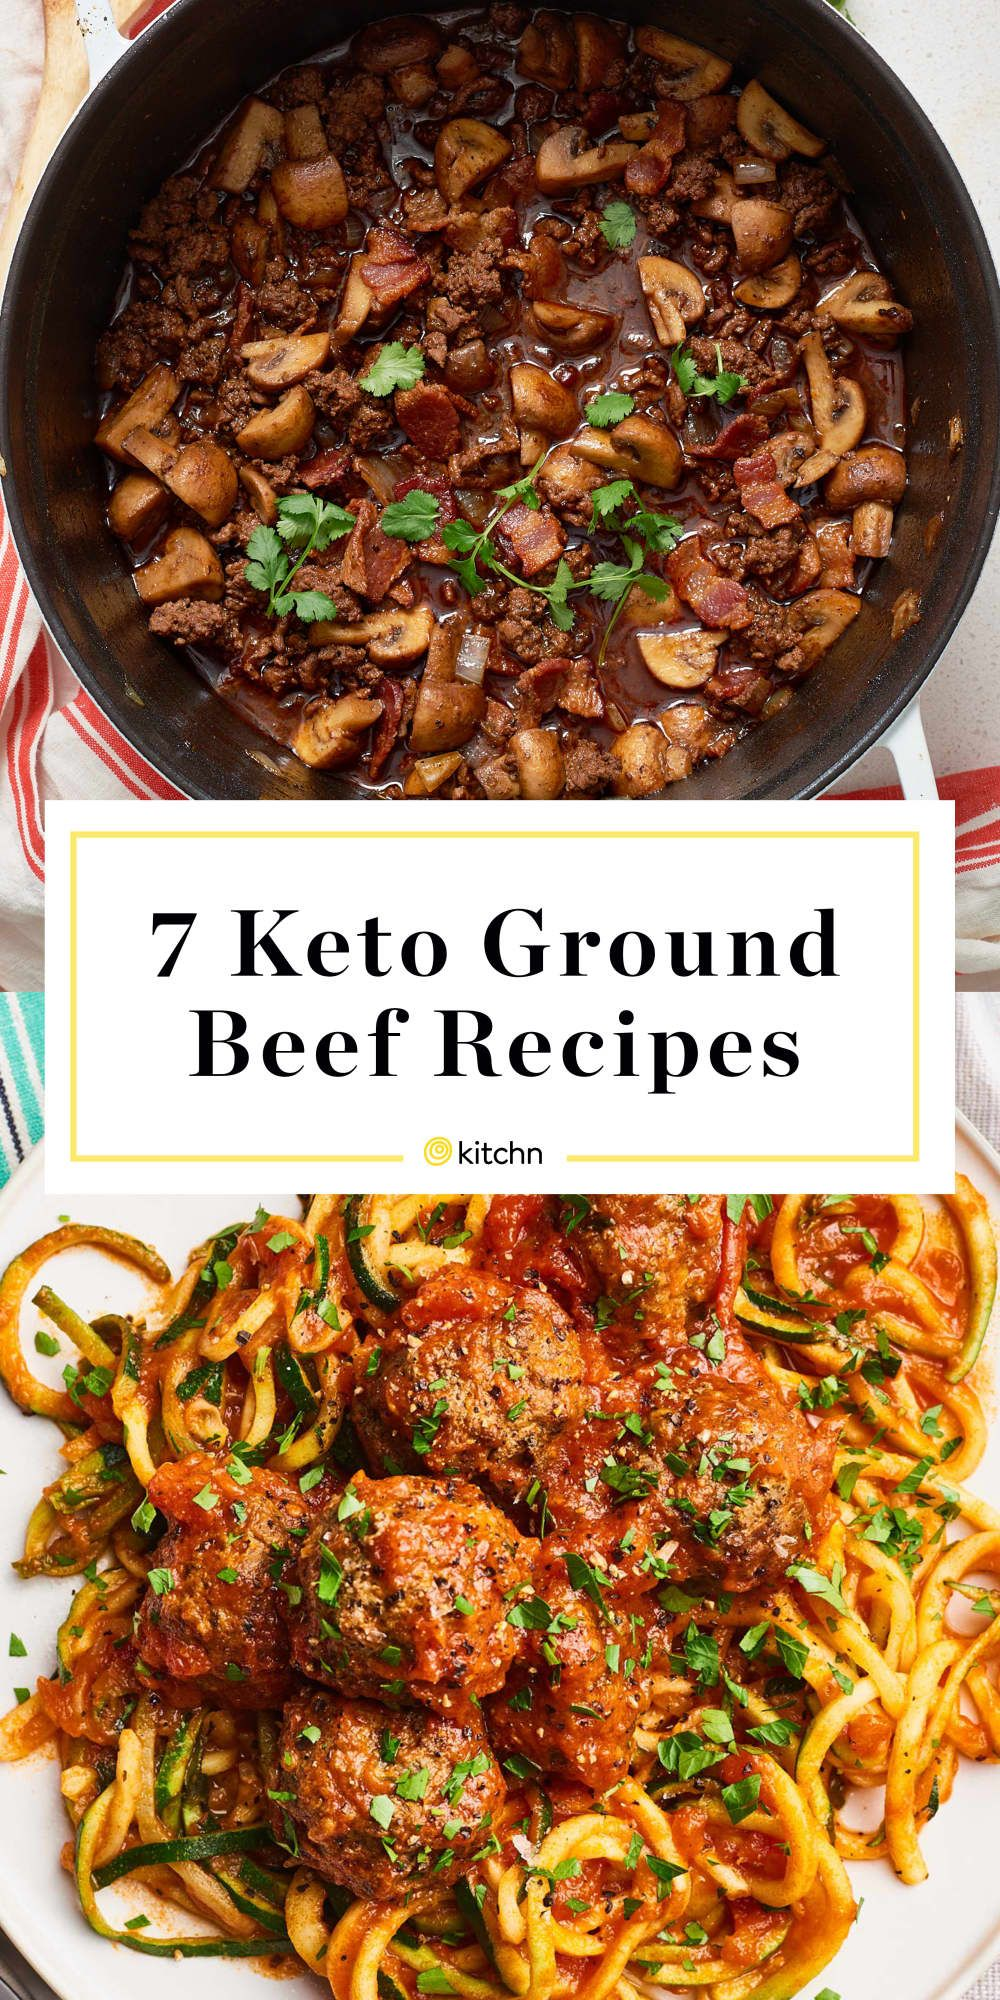 7 Low Carb Keto Recipes That Start With A Pack Of Ground Beef Minced Beef Recipes Ground Beef Healthy Meat Recipes